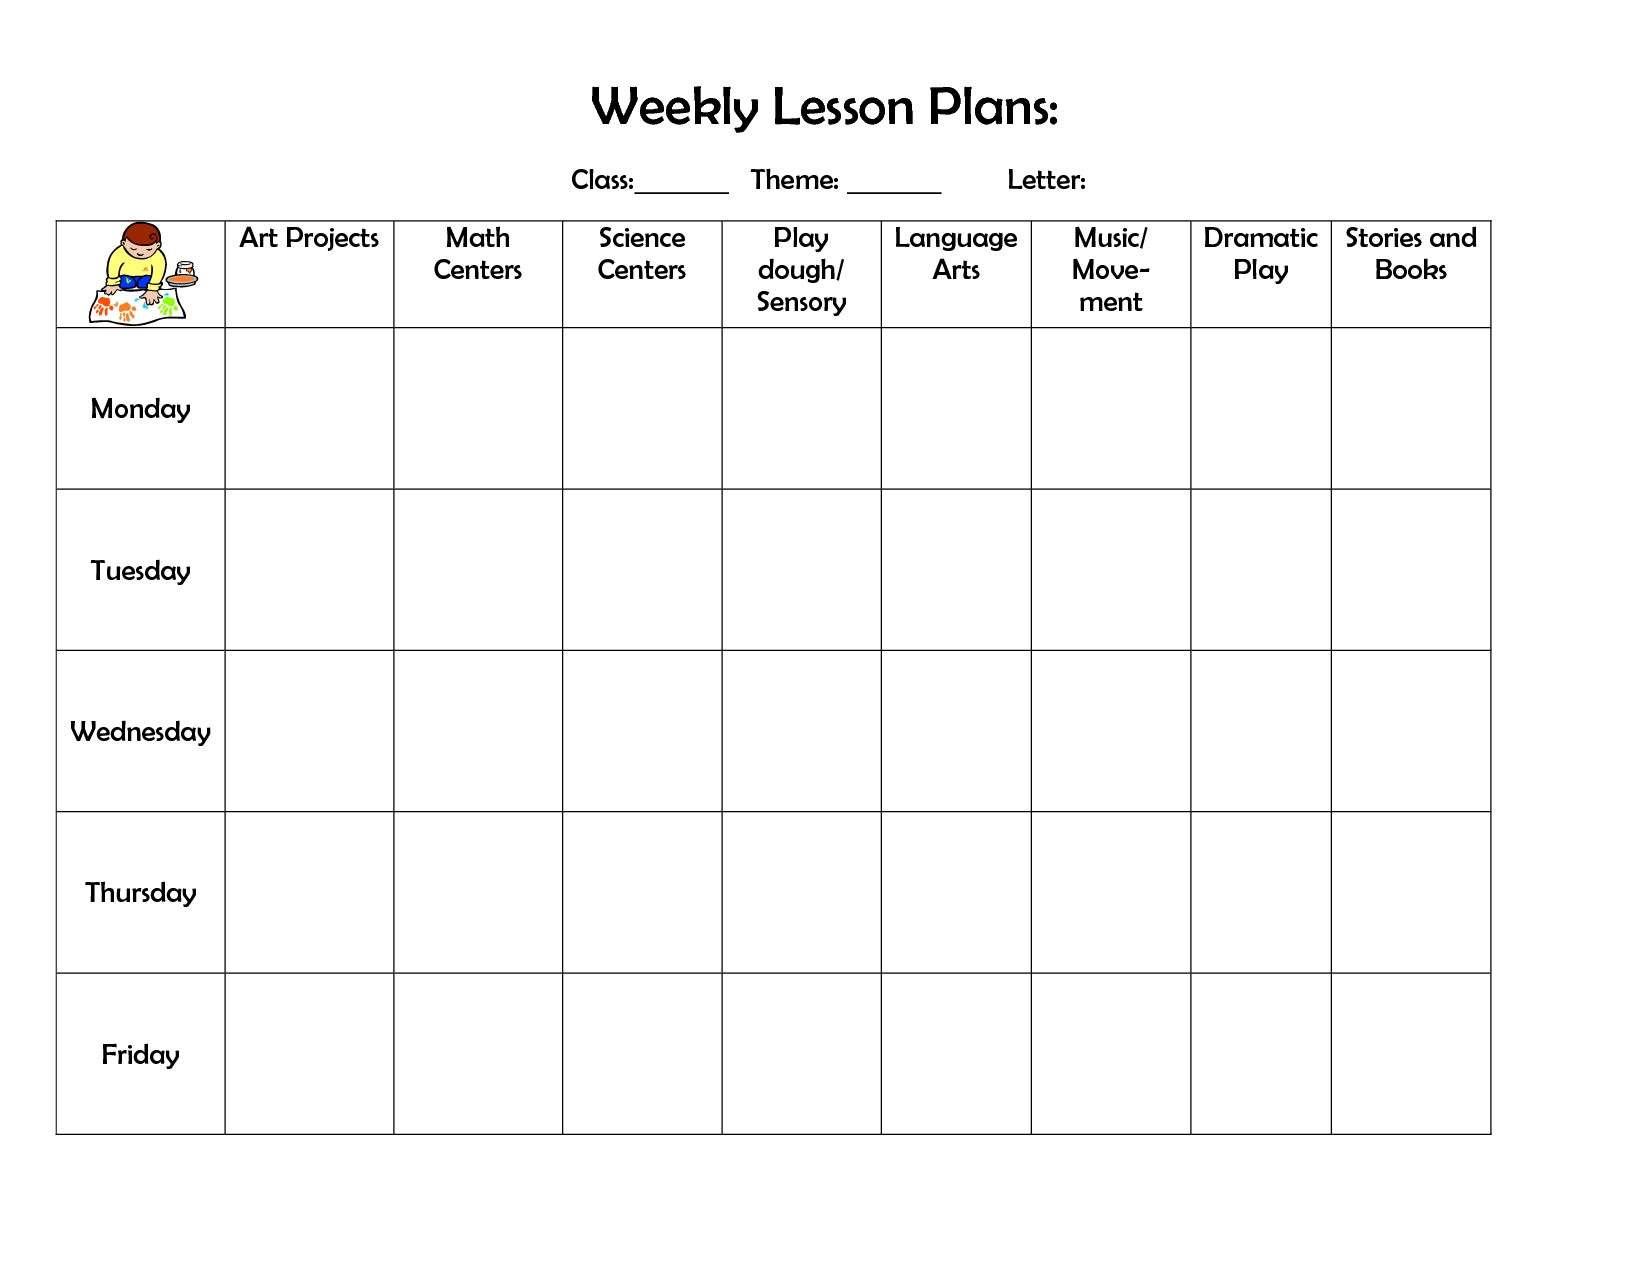 Weekly Lesson Plan | Lesson Plan Template | Preschool Lesson-Daycare Weekly Lesson Plan Template